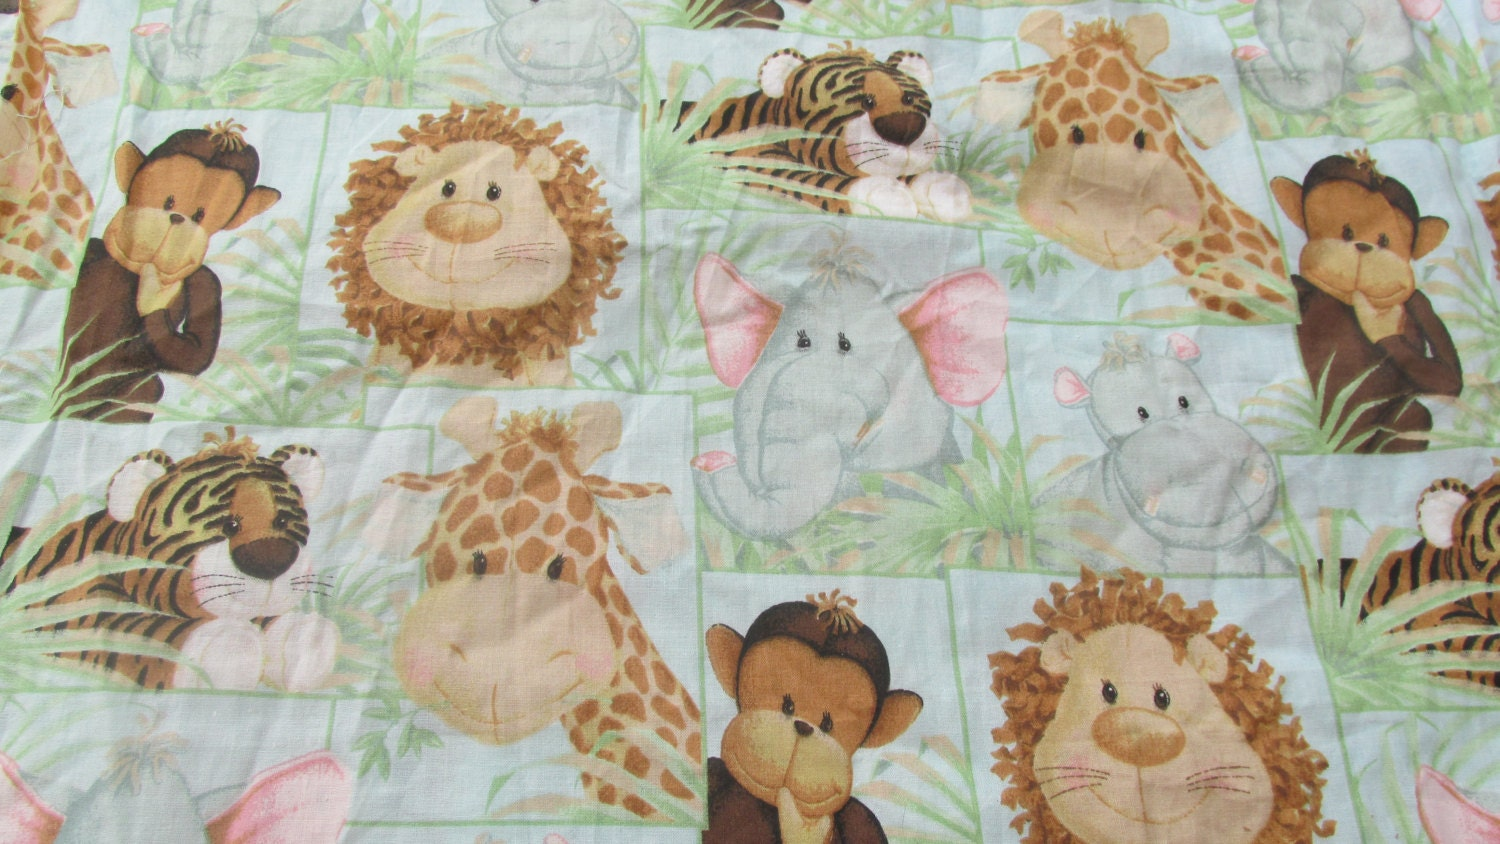 Jungle babies fabric nursery print fabric childrens fabric for Nursery monkey fabric